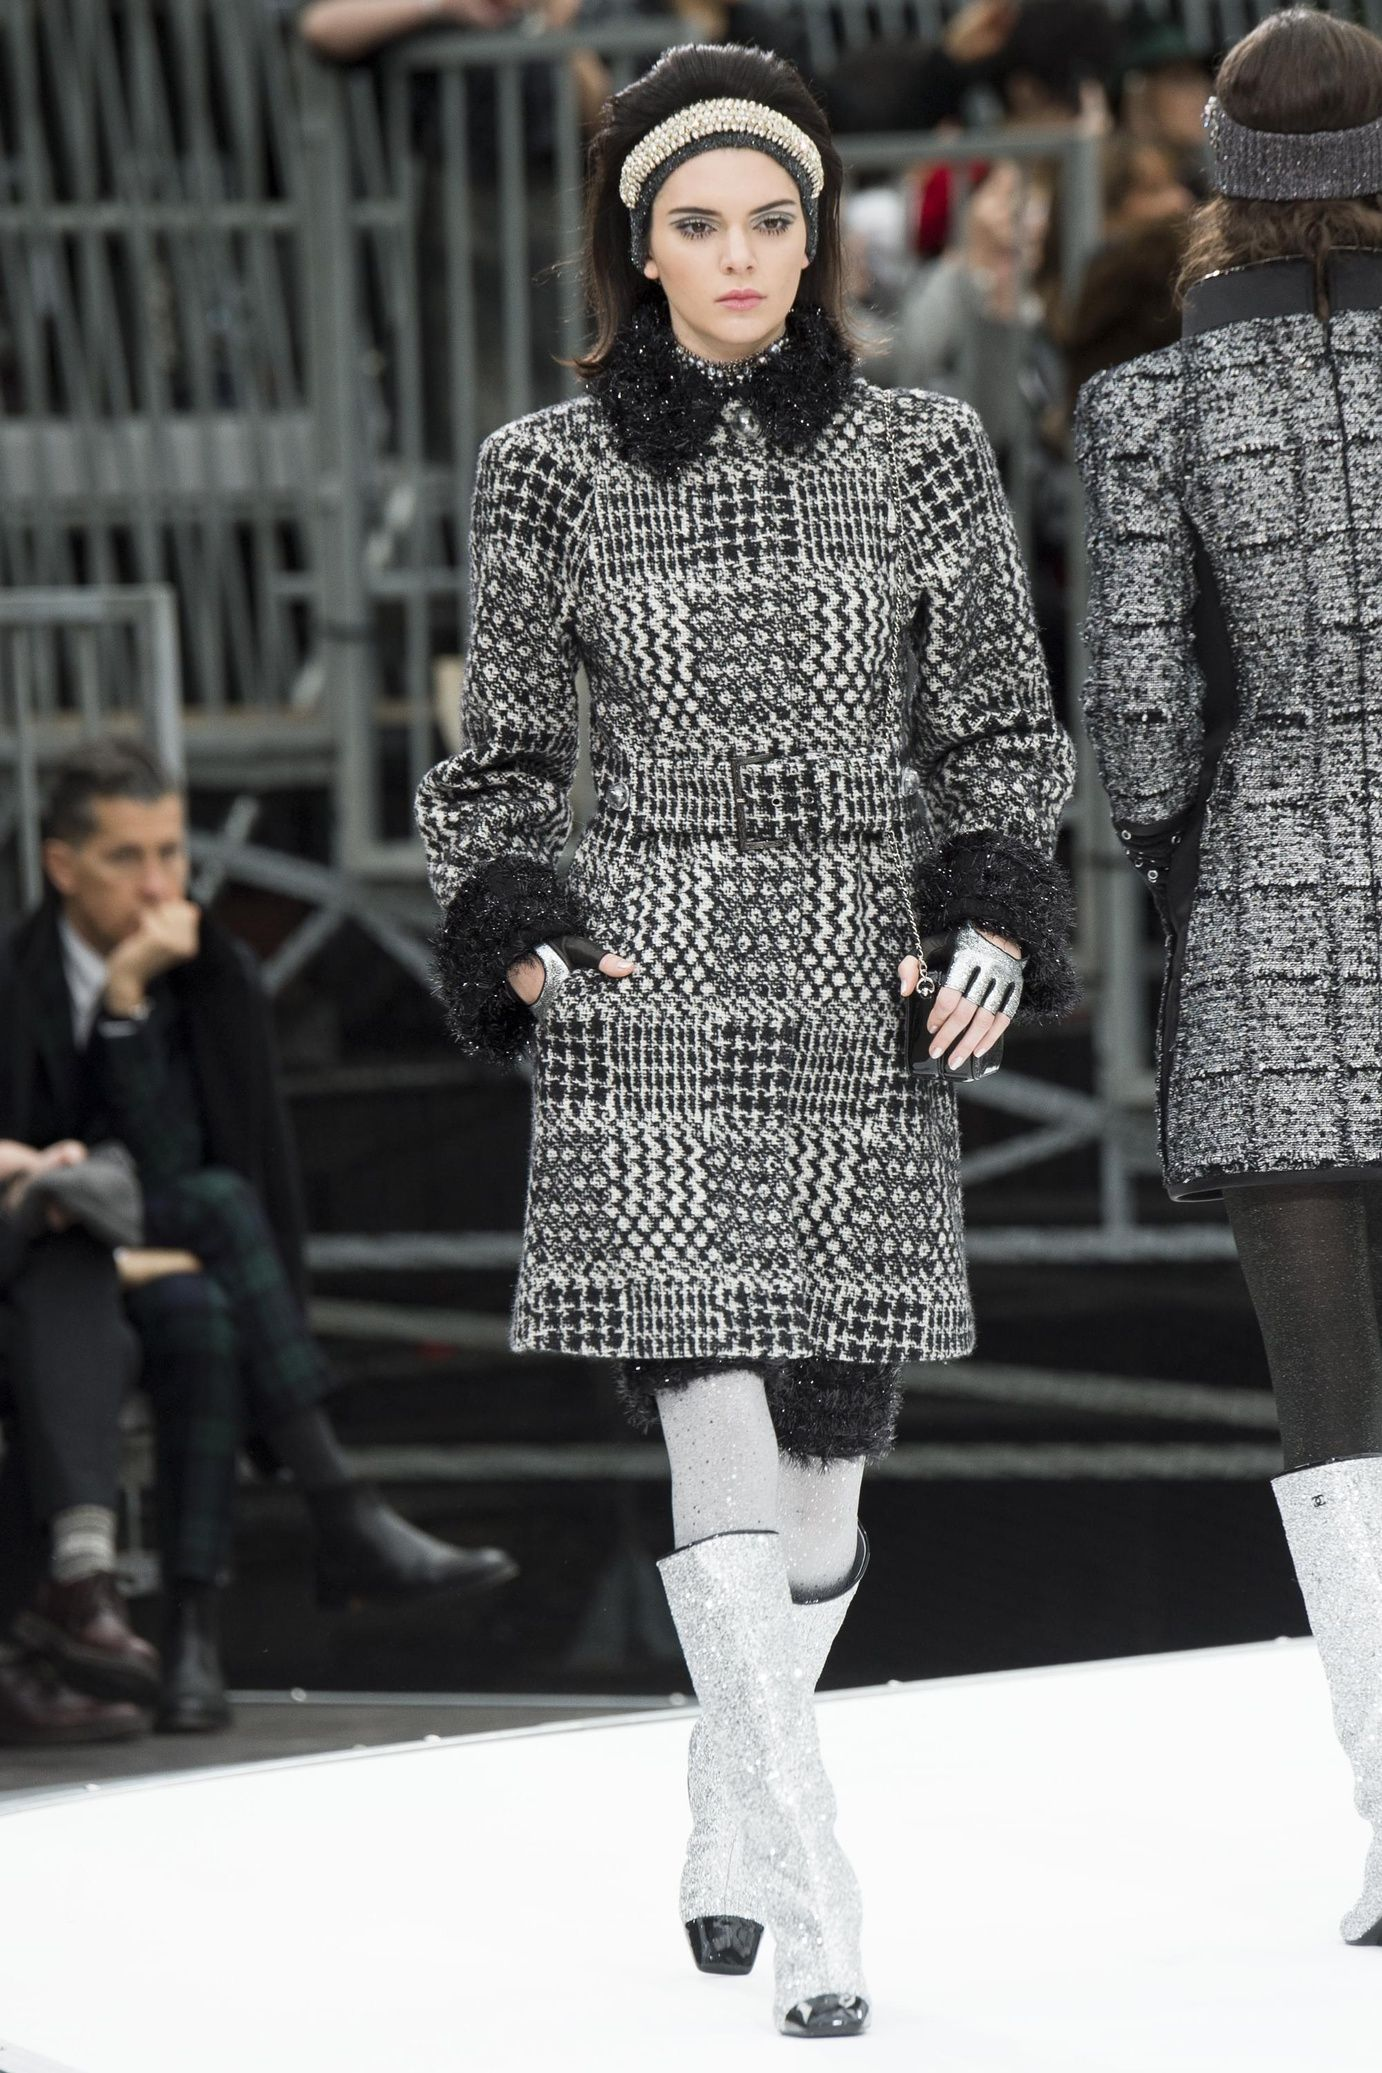 Défilés Manteaux Chanel fall 2017, Fashion et Chanel